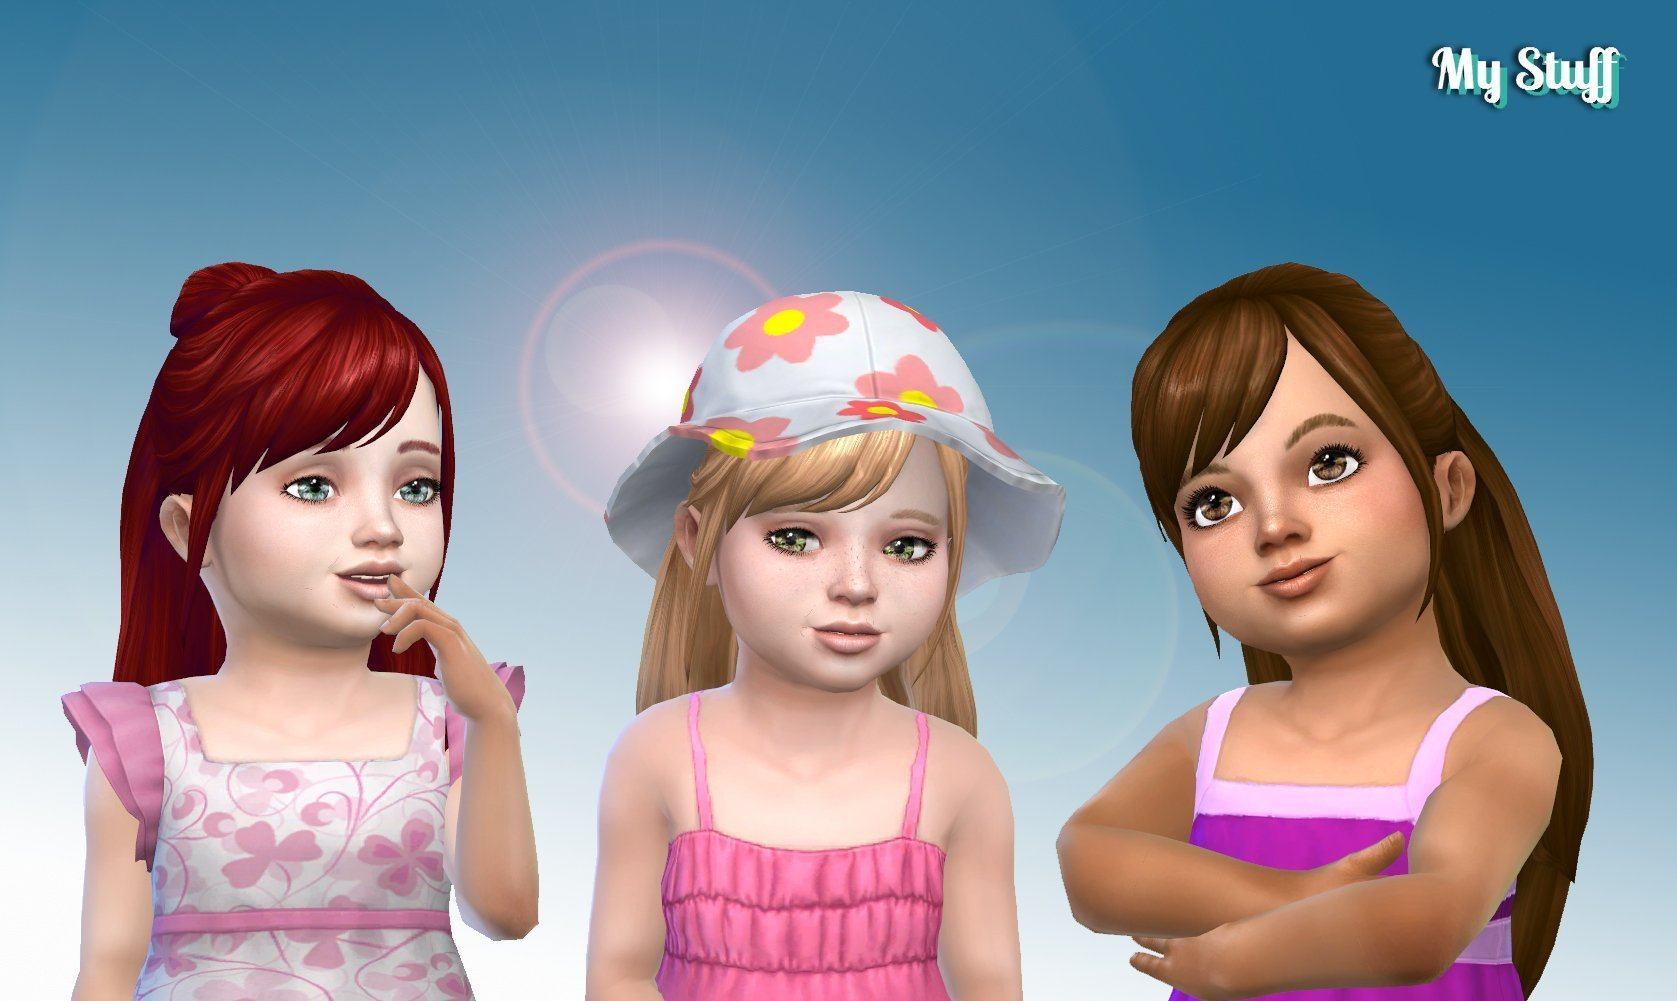 Natalie Hairstyle for Toddlers